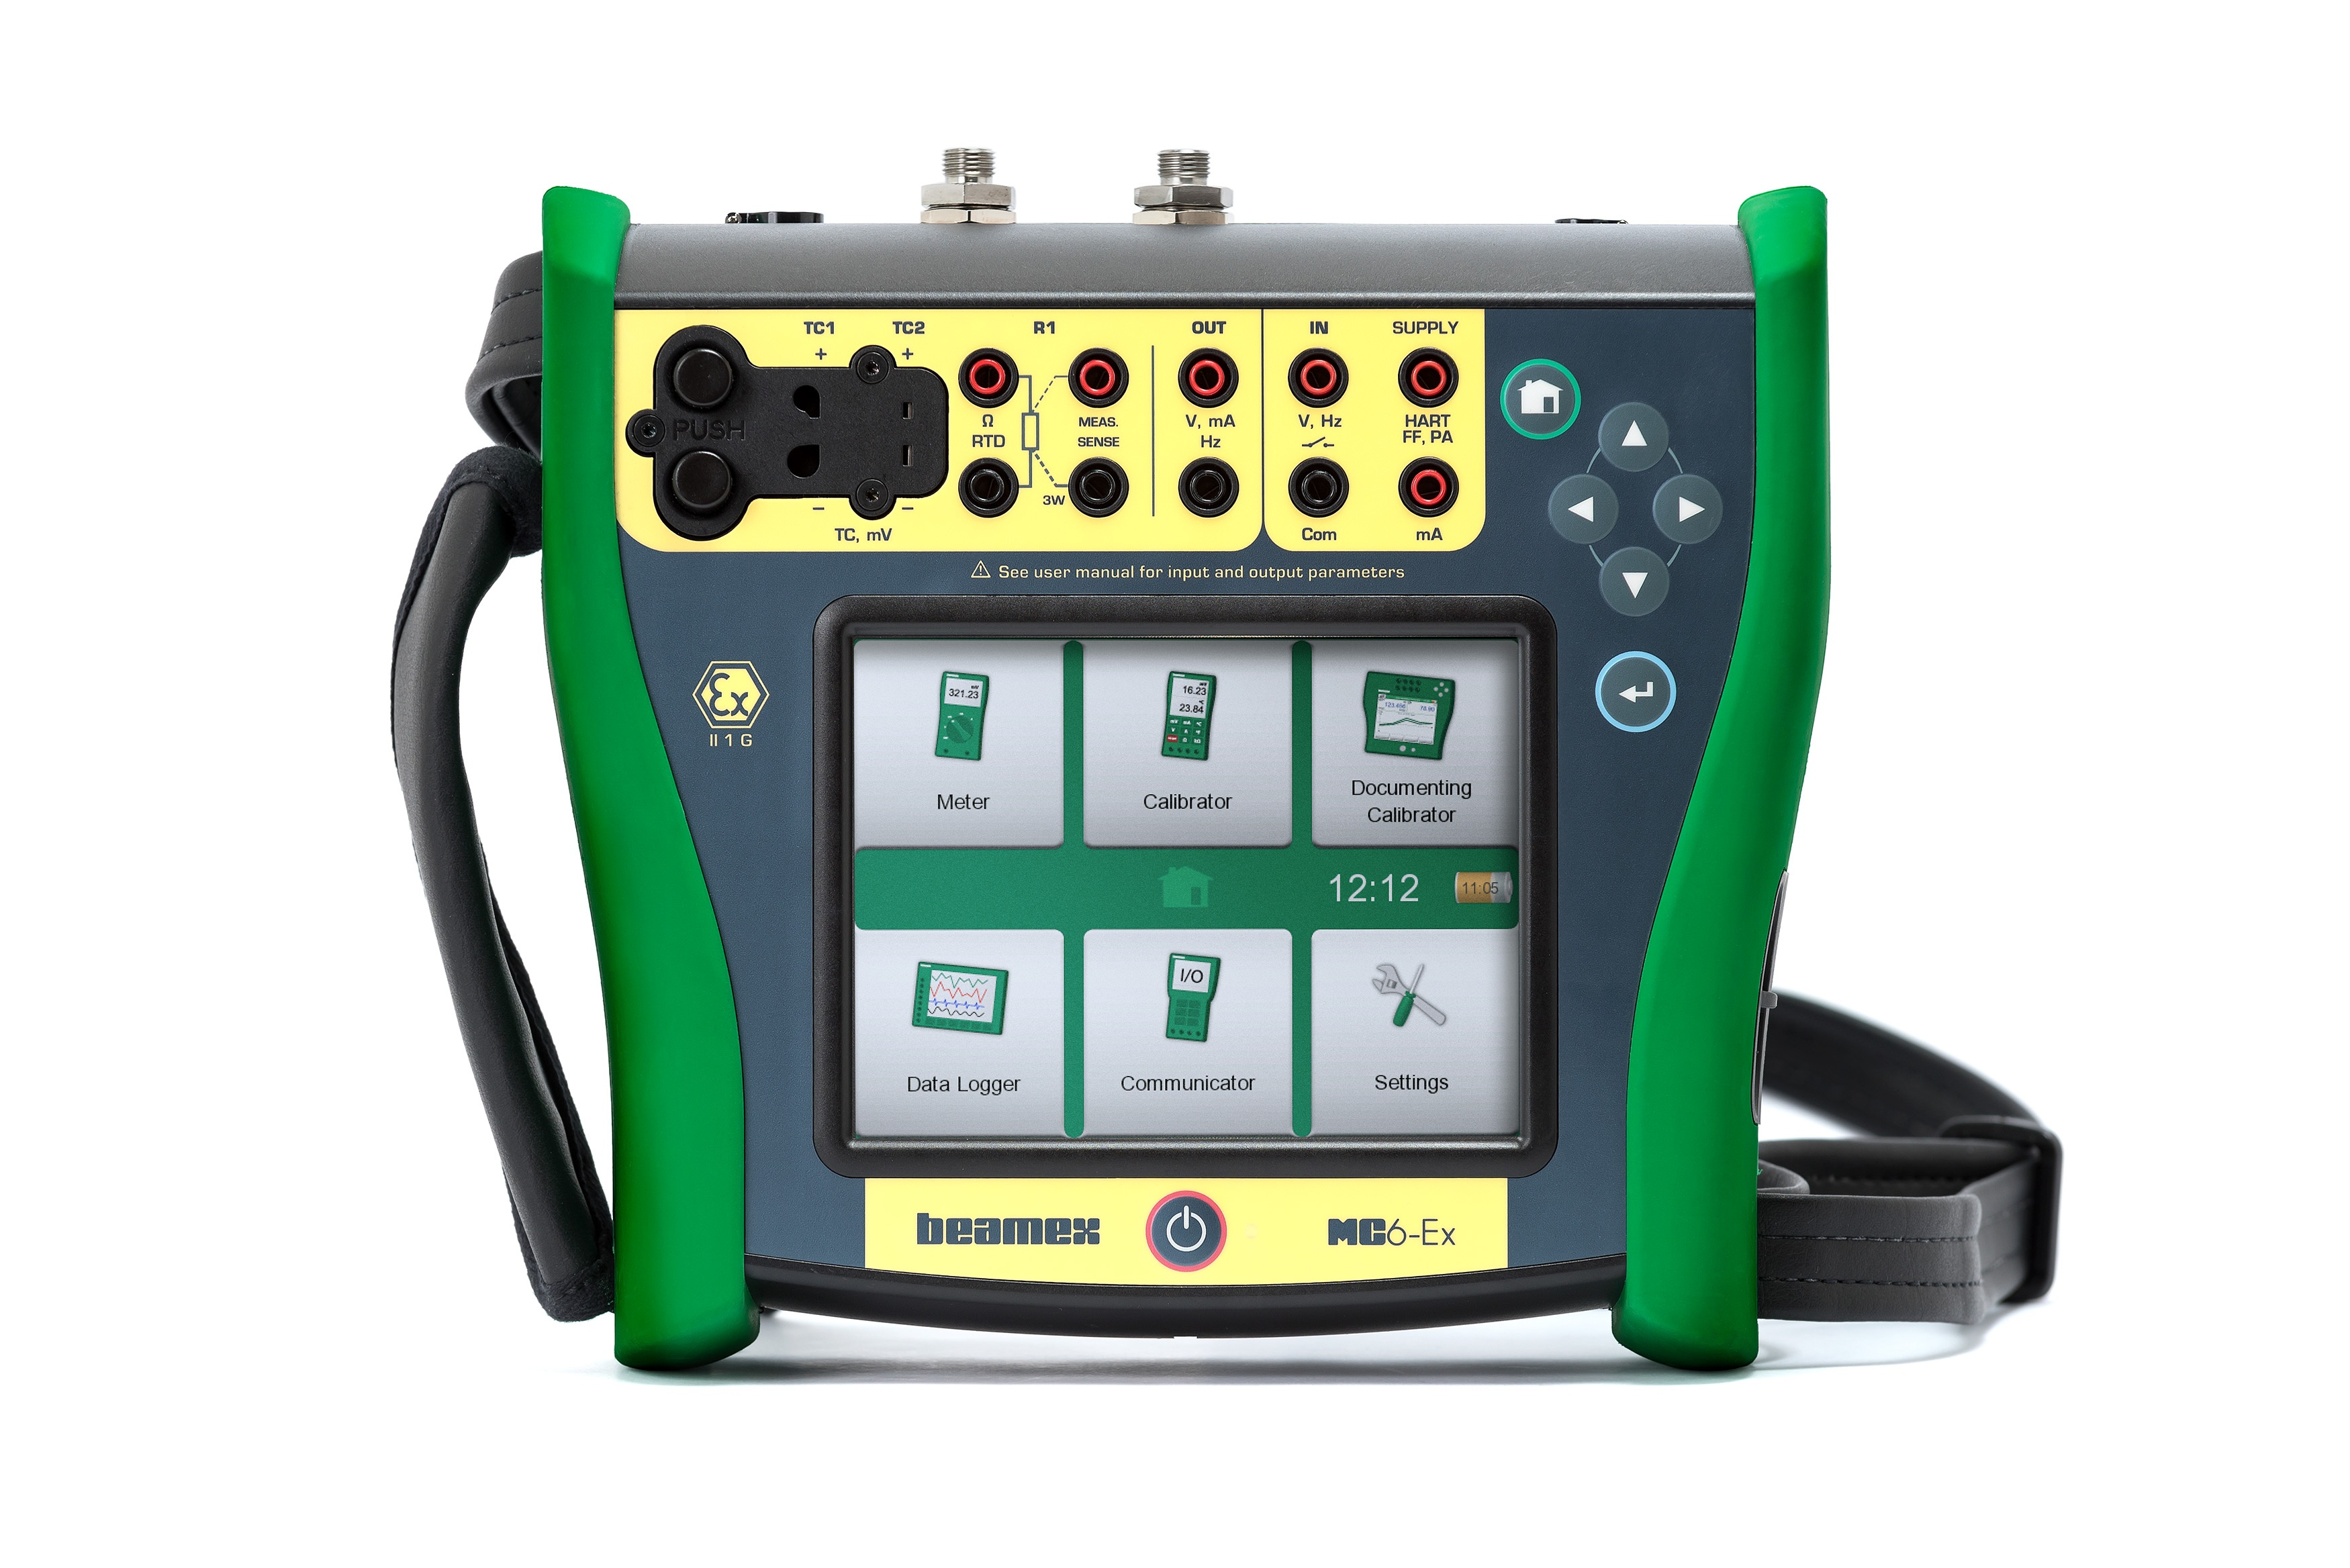 Beamex MC6-Ex Intrinsically safe calibrator v1.jpg